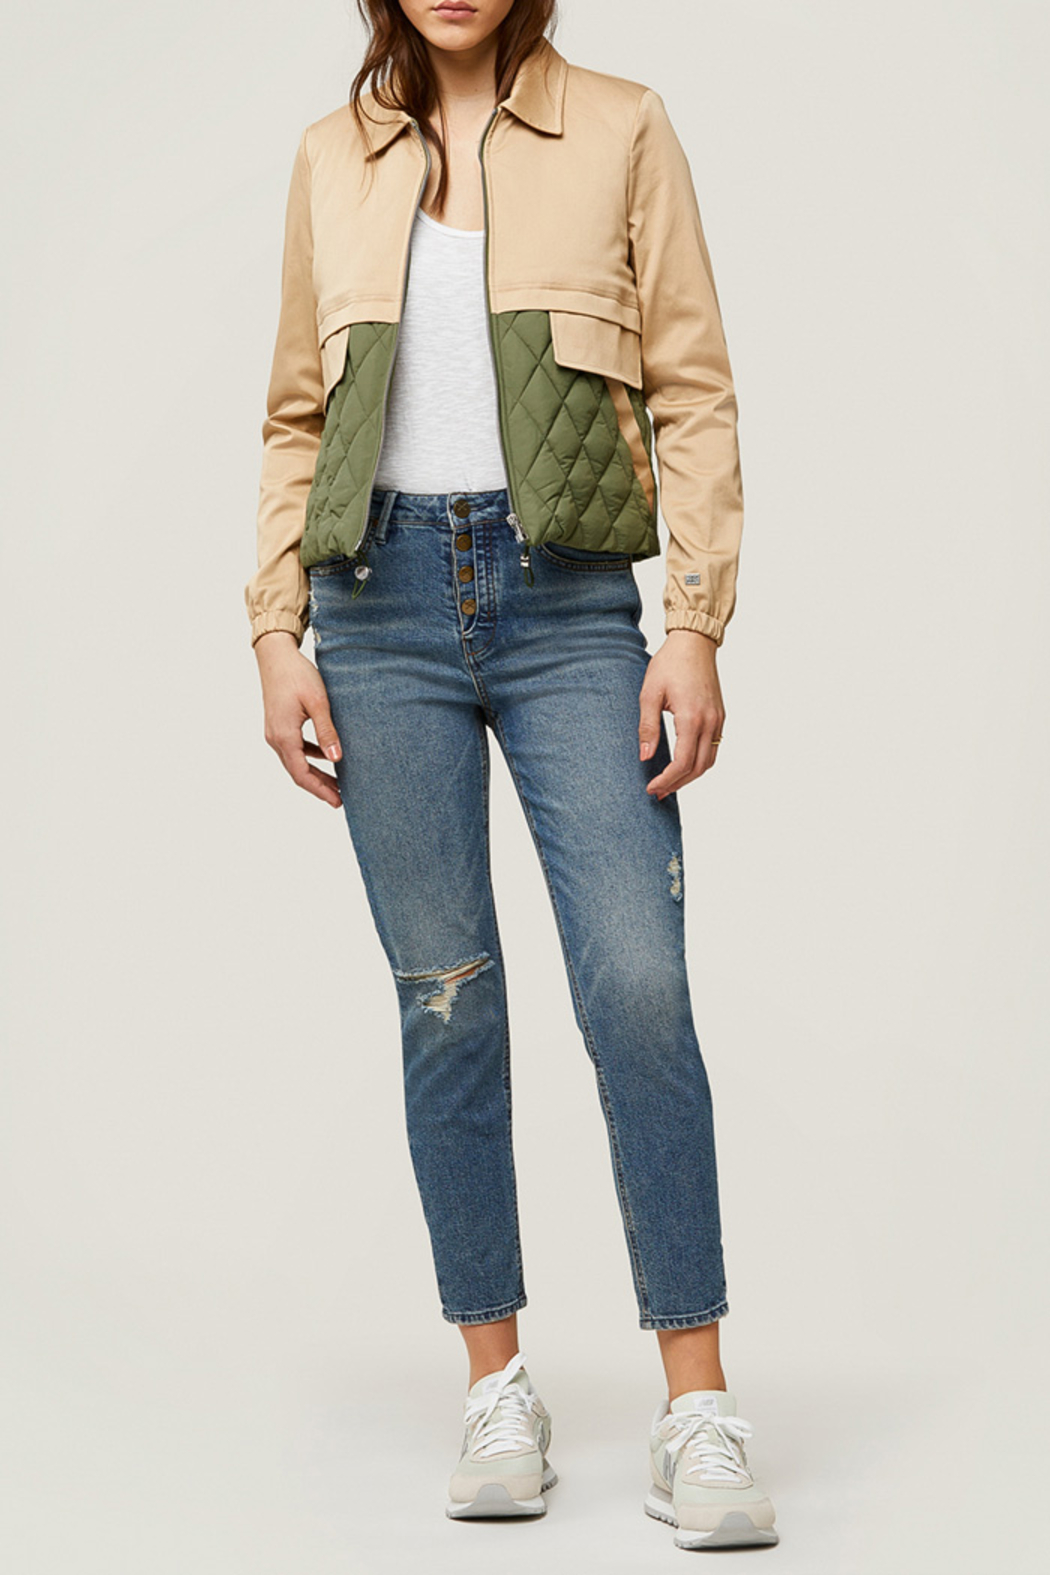 Soia & Kyo Mixed Media Water-Repellent Jacket - Front Full Image